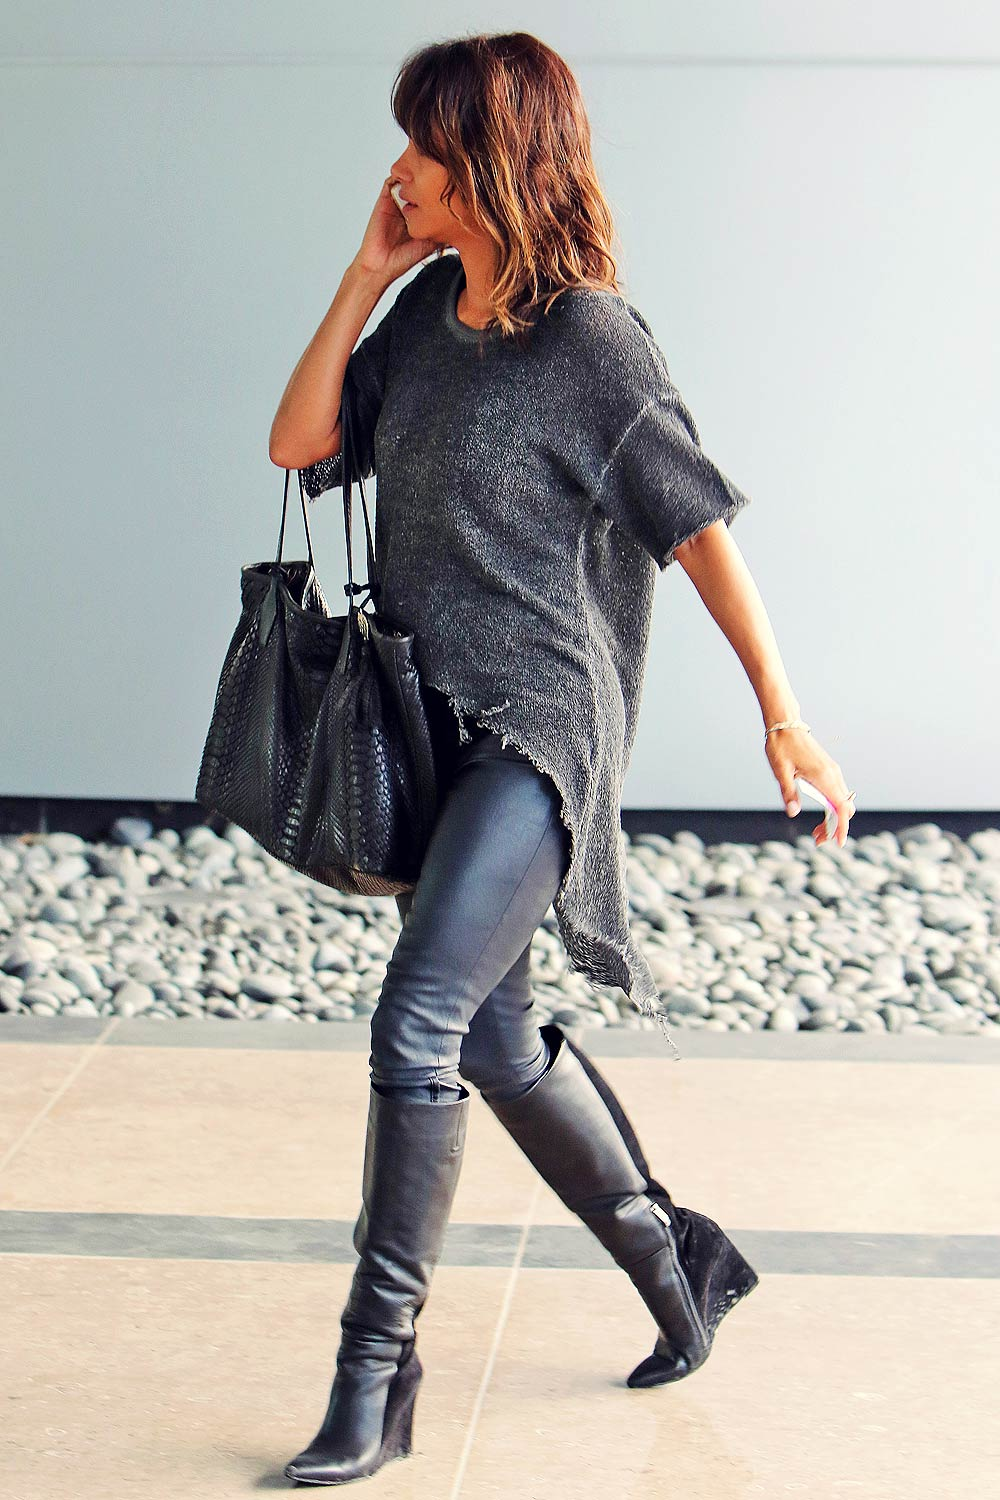 Halle Berry Arriving For A Meeting In Santa Monica